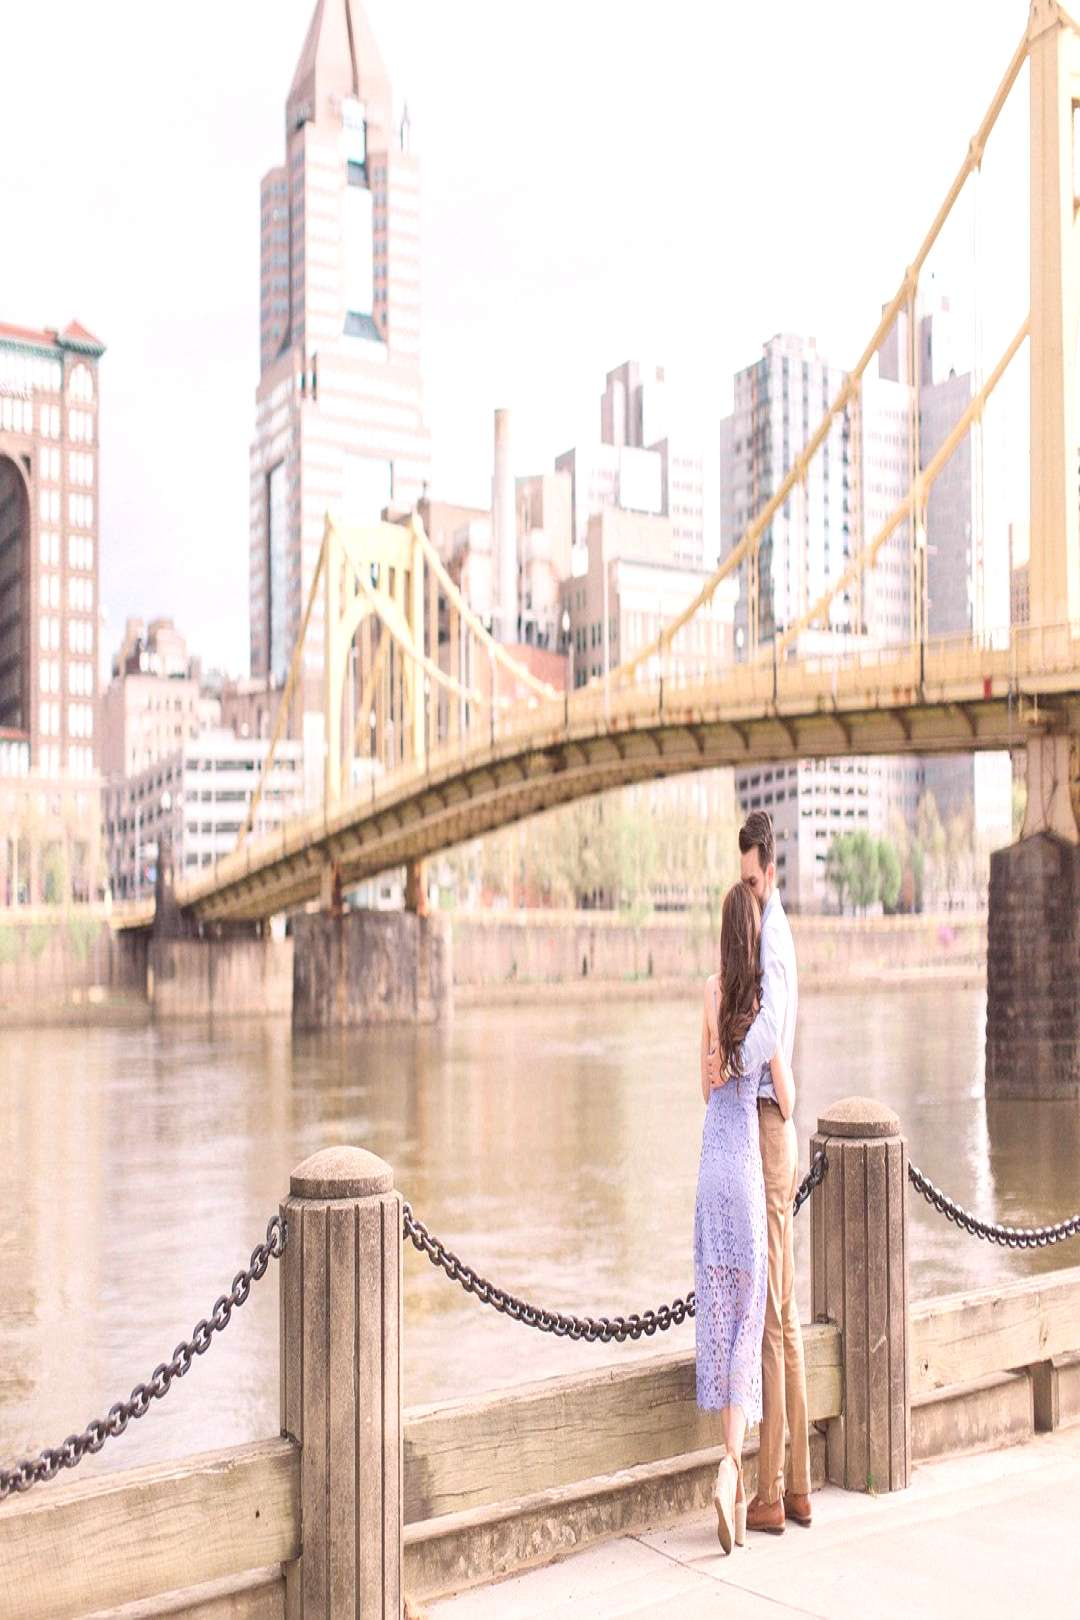 Engagement Session in downtown Pittsburgh. Engagement ideas, outfits, photo idea... - Engagement S